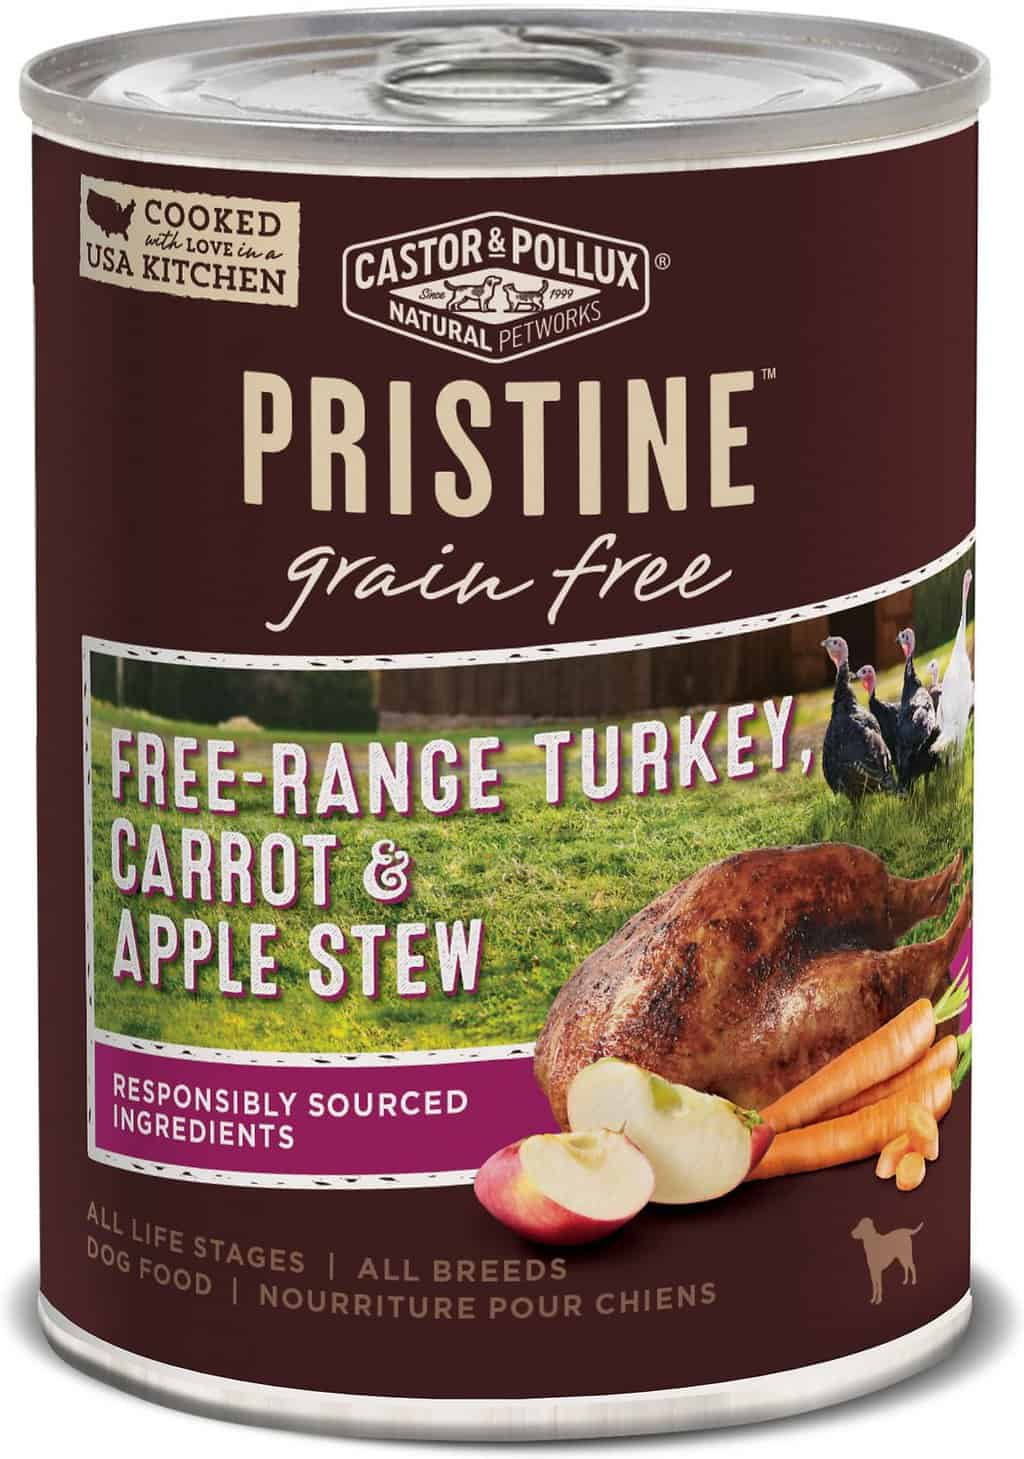 Castor and Pollux Dog Food: 2020 Review, Recalls & Coupons 17